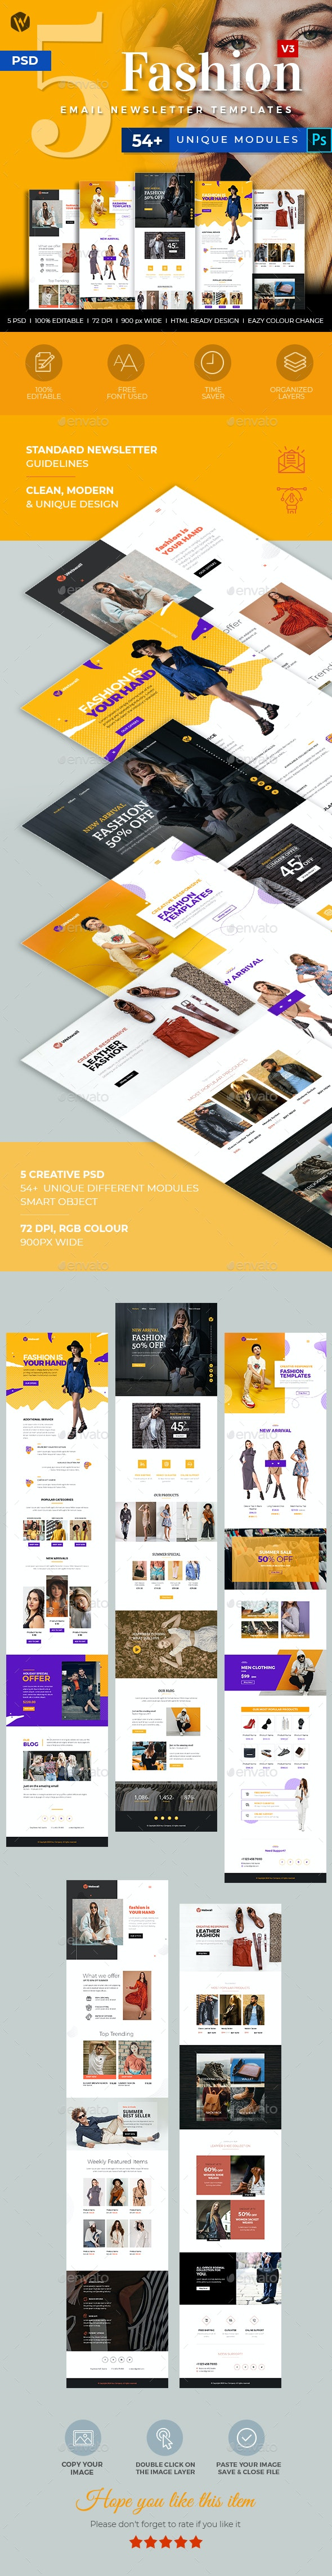 5 Fashion Email Newsletter PSD Templates v3 - E-newsletters Web Elements